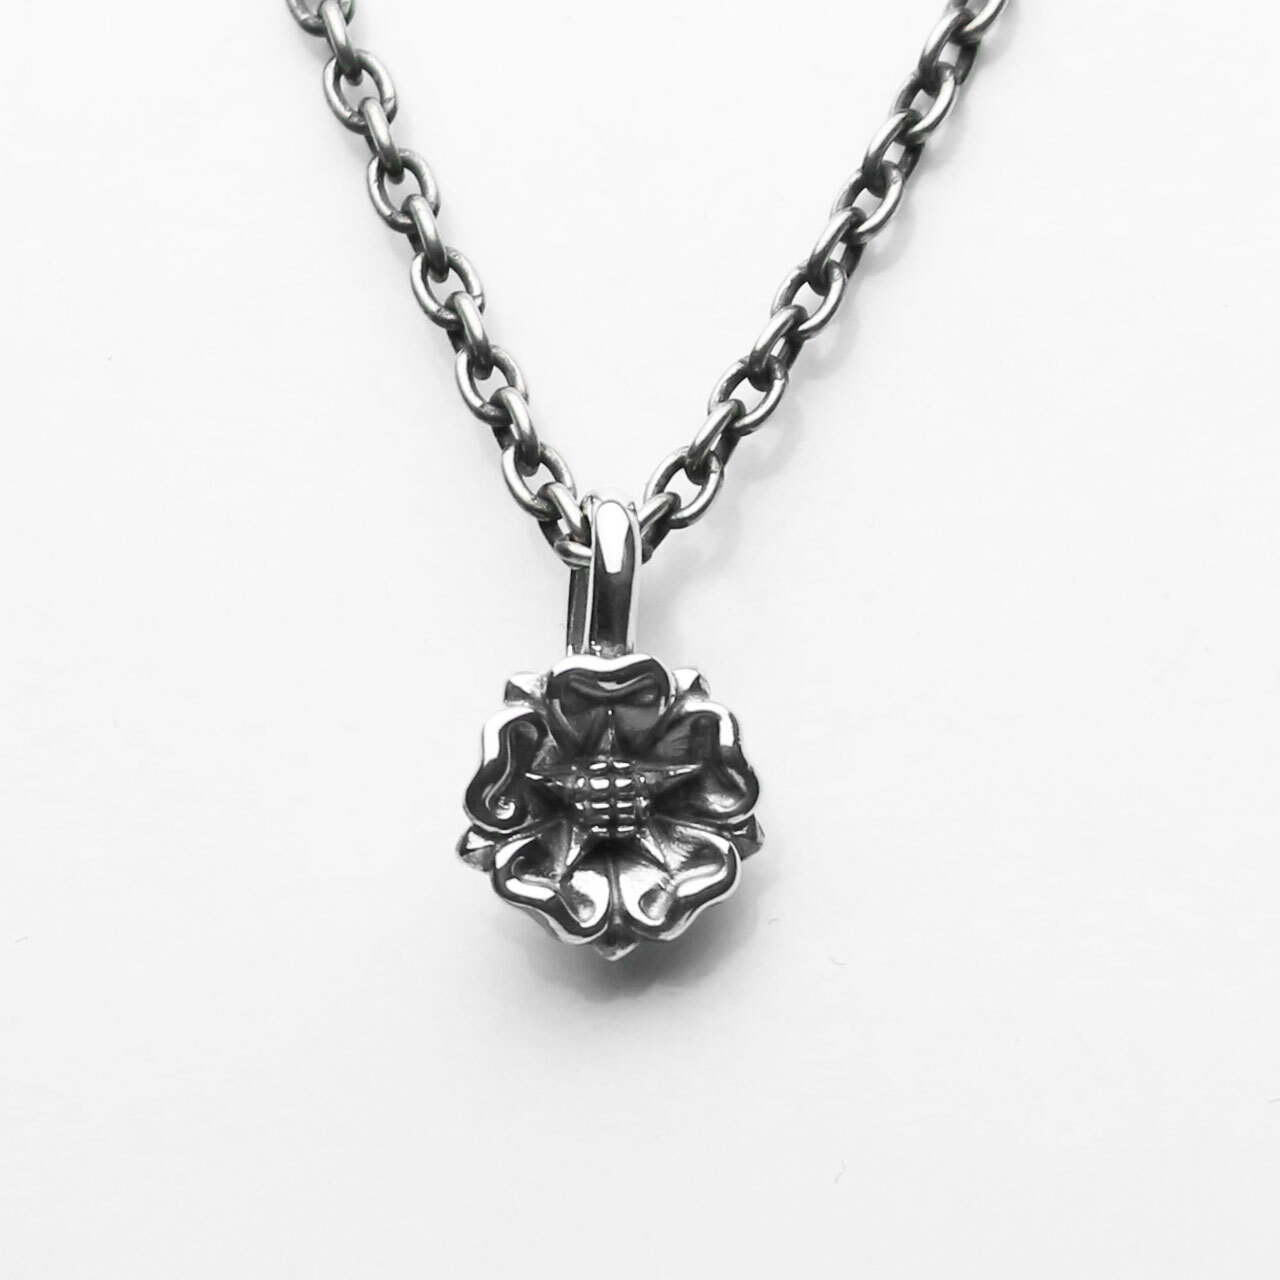 A ManP.Rose Necklace エーエムエーエヌ プレイリーローズネックレス